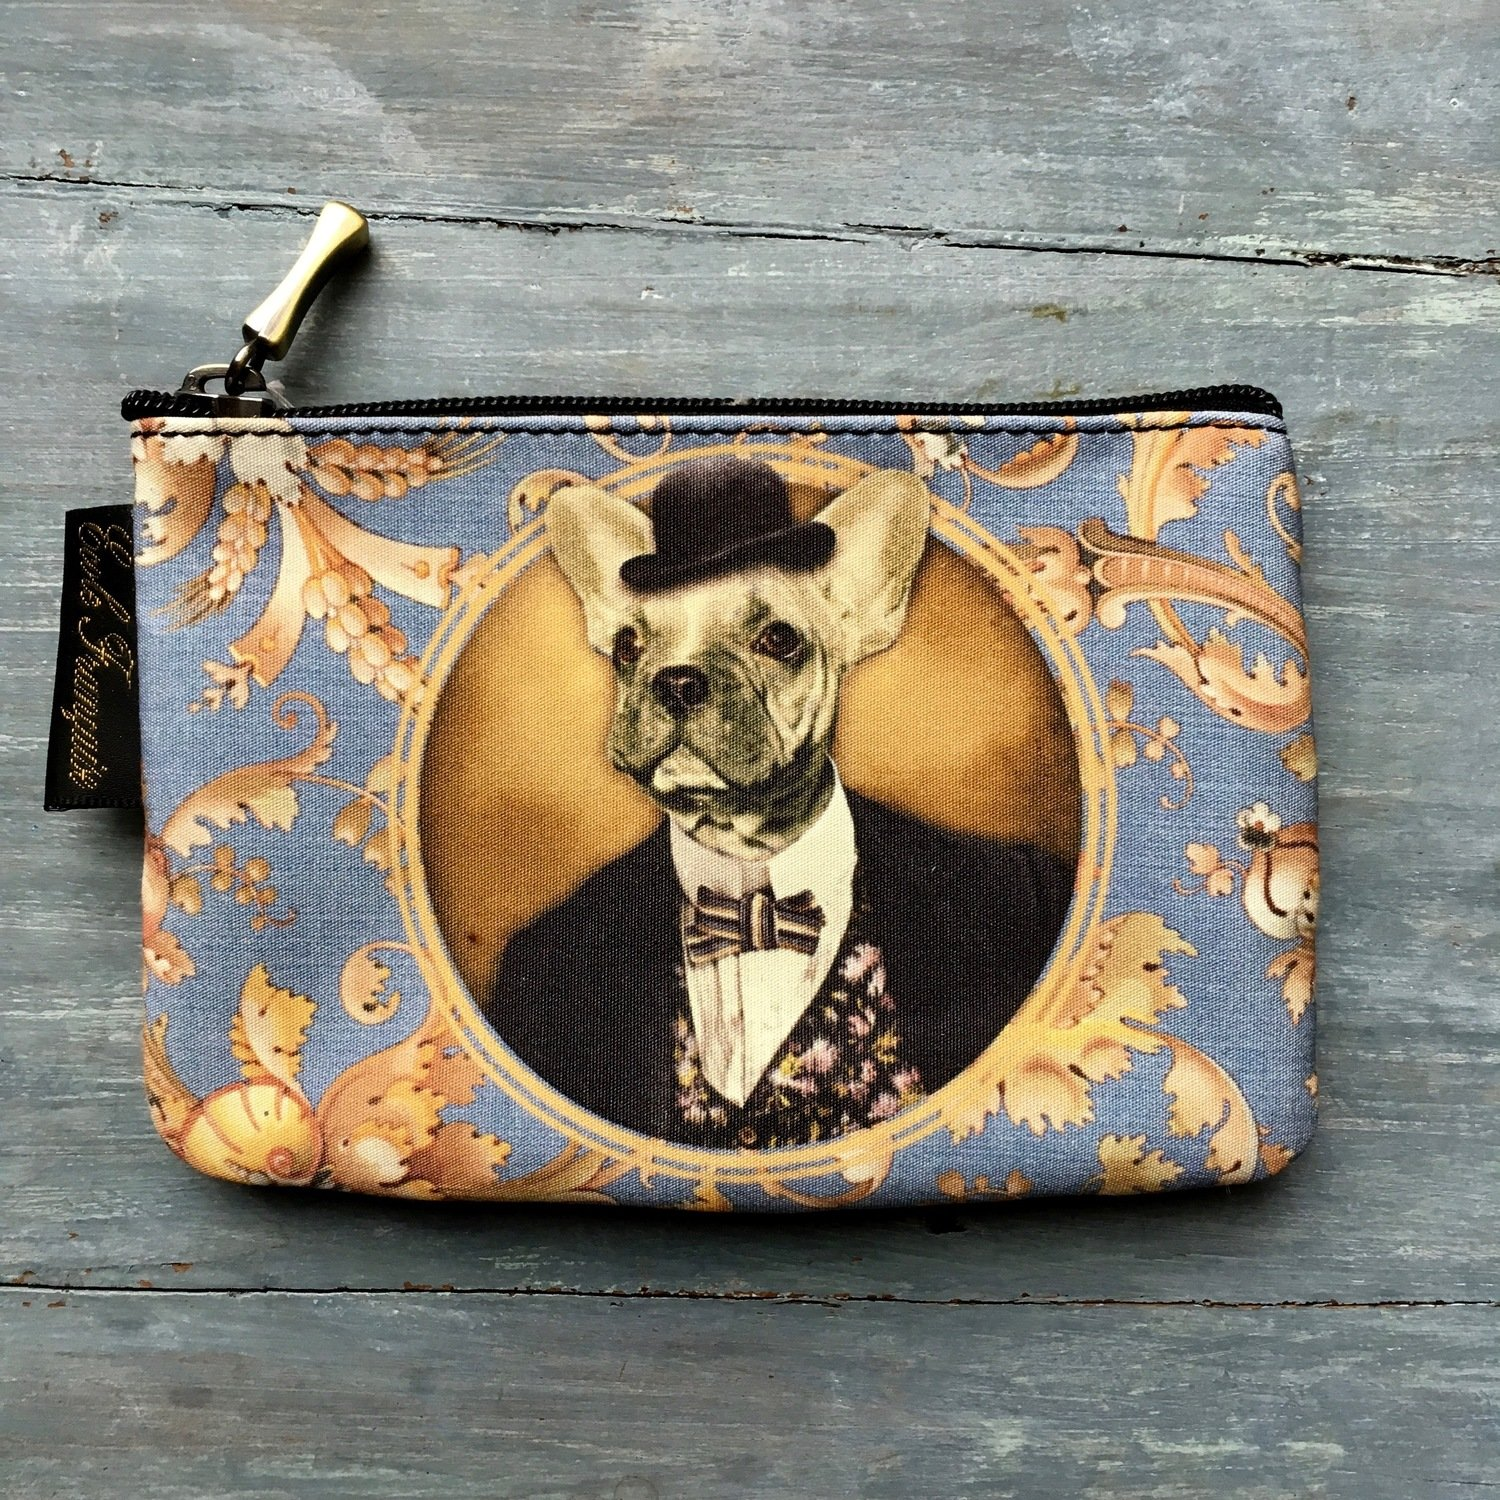 Mini purse 'Hector' - Les Cakes de Bertrand